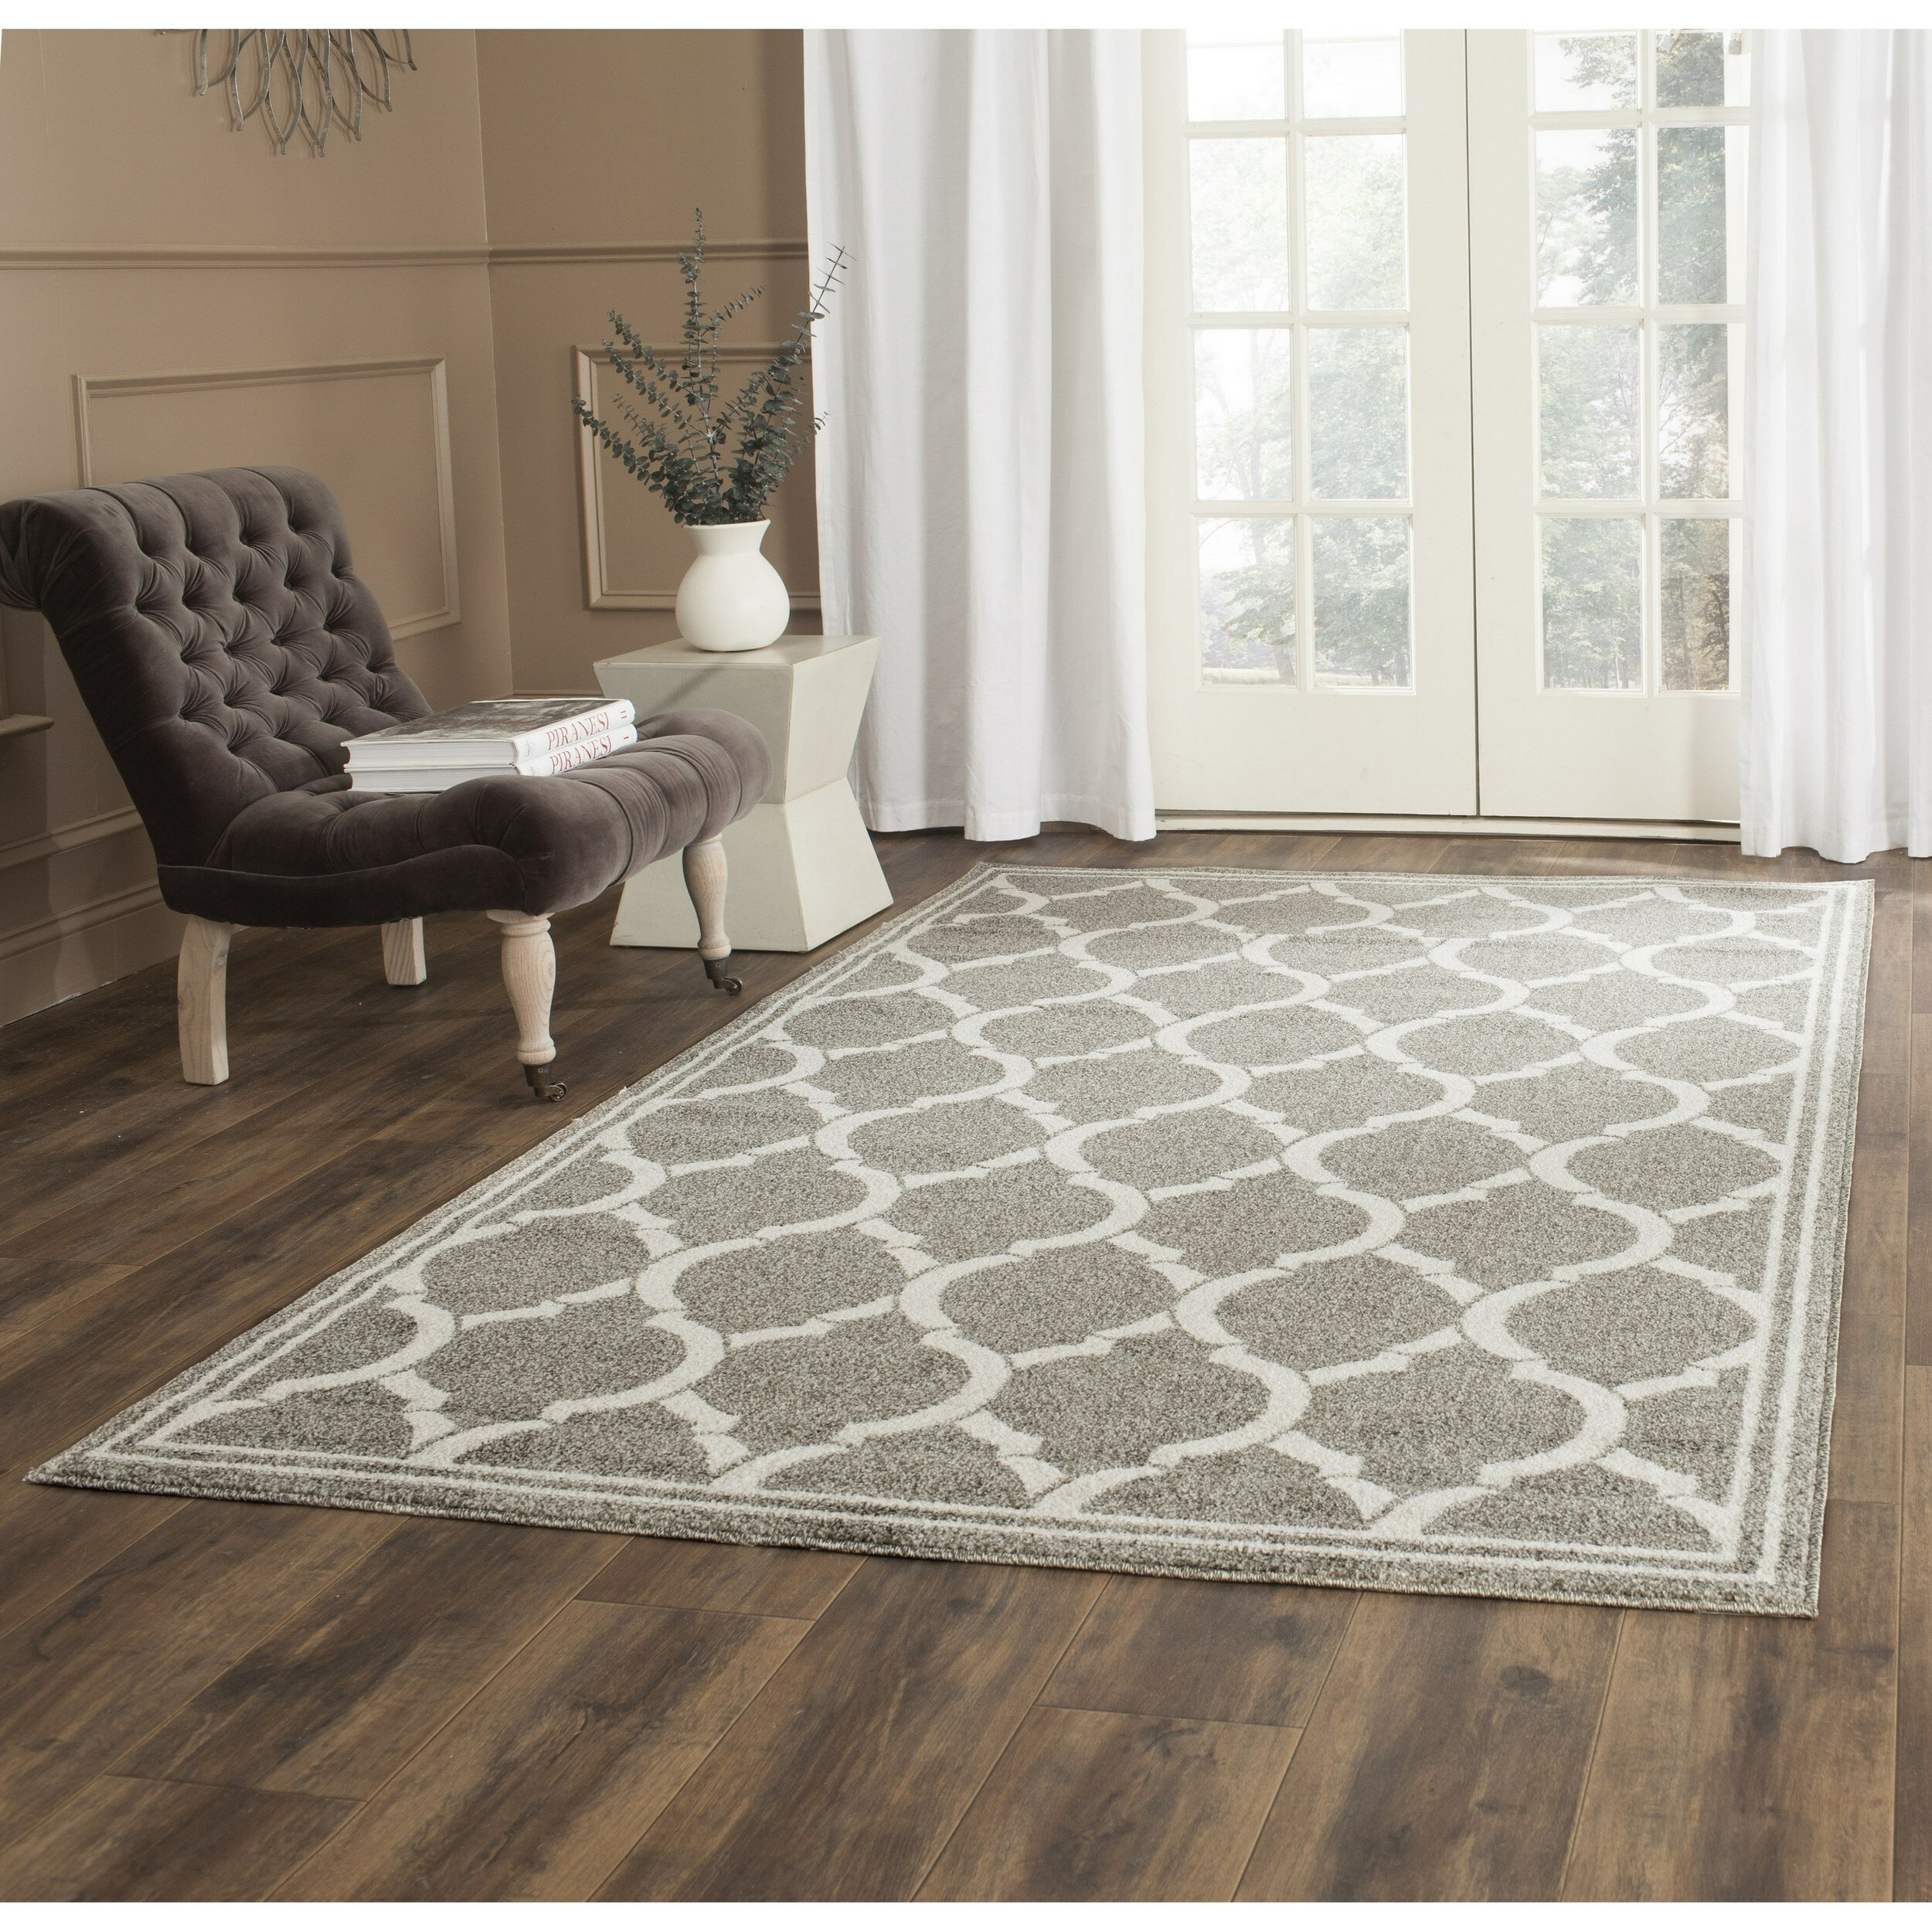 Safavieh Amherst Dark Gray Beige Indoor Outdoor Area Rug